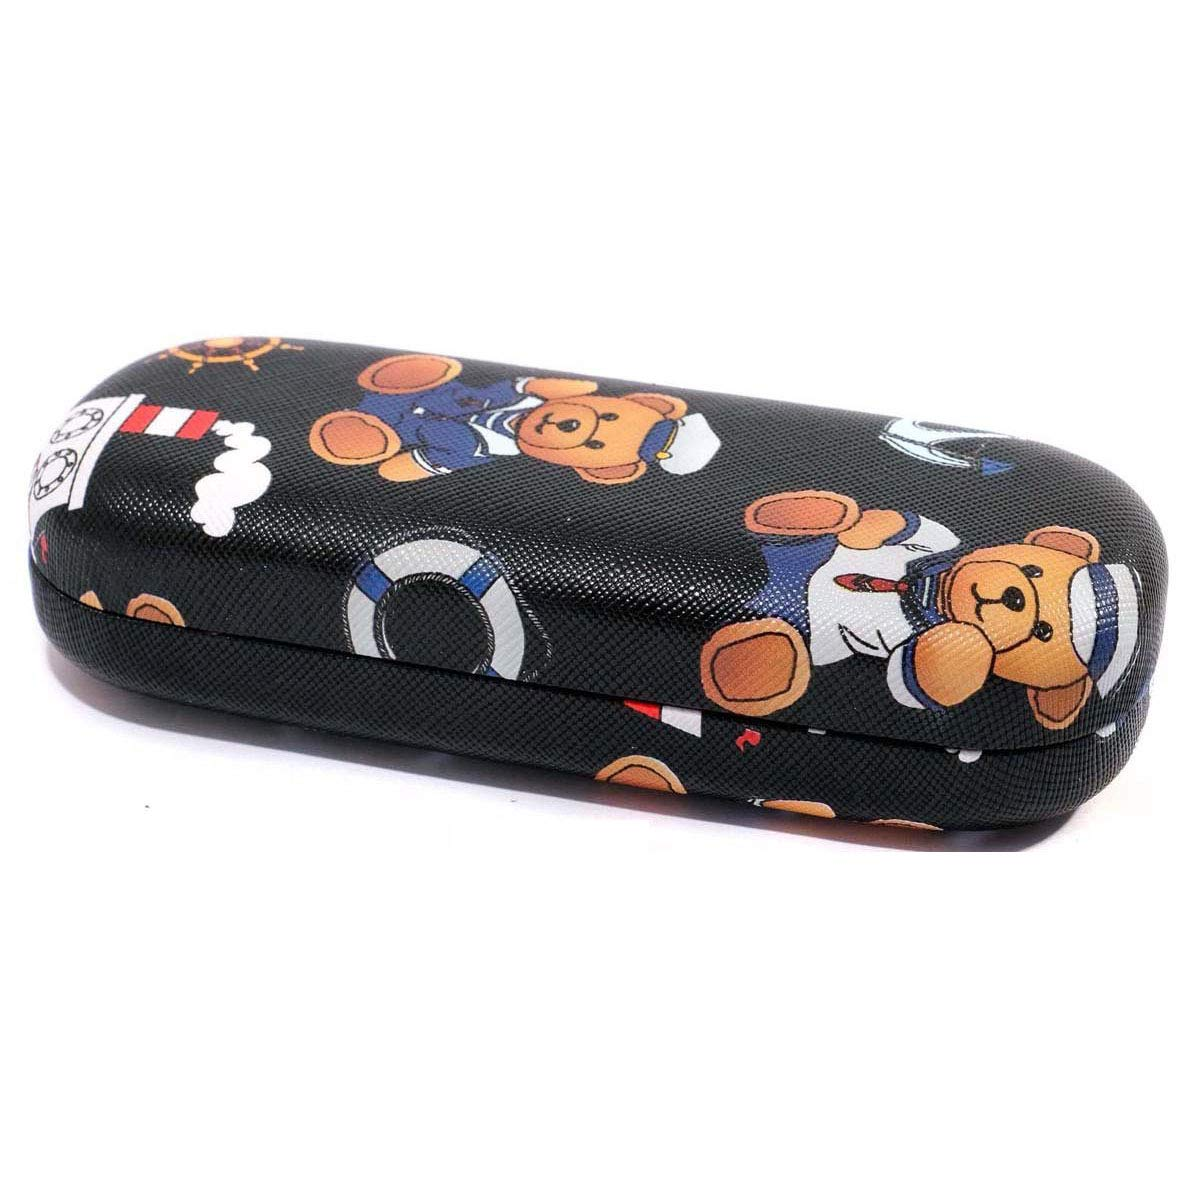 Handmade Russian Glasses case for a boy, black with a color print, on a solid basis, covered with artificial leather